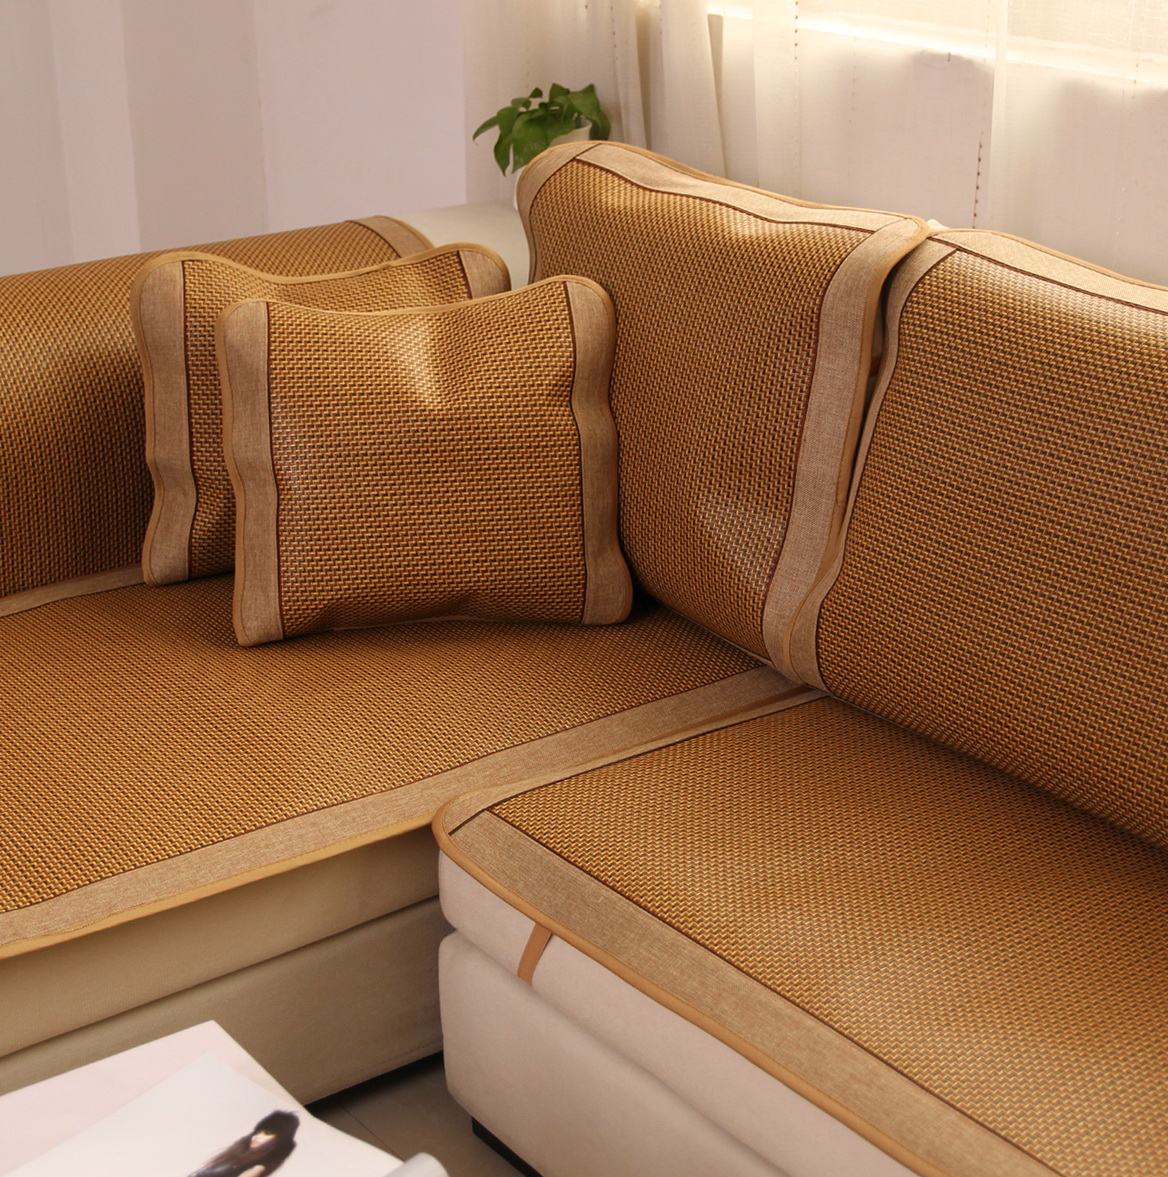 Leather Couch Cushions Slipping